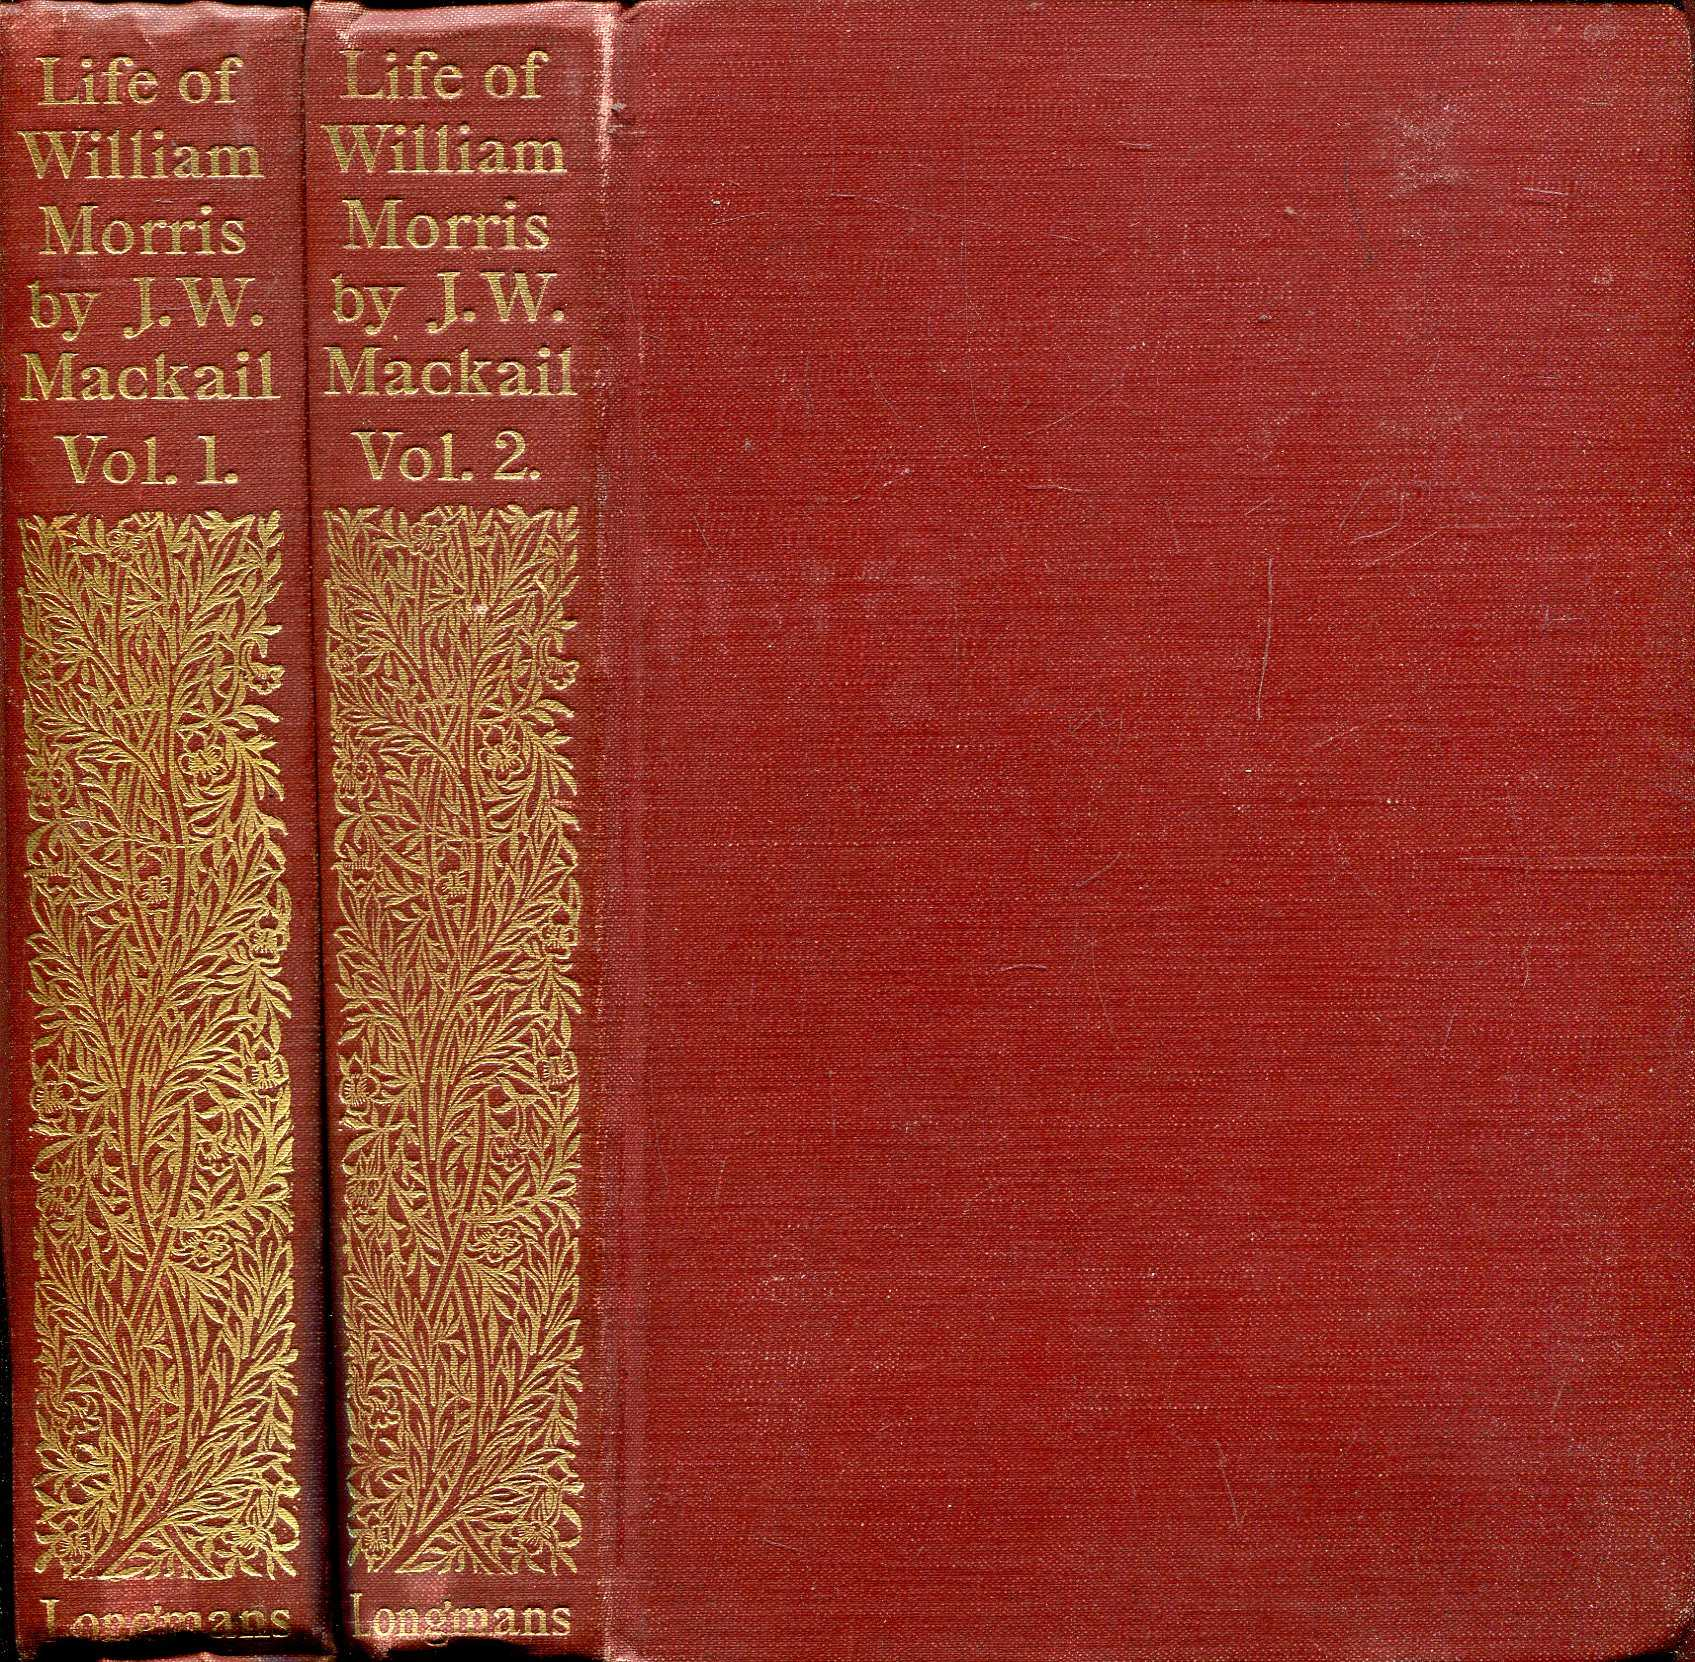 Image for The Life of William Morris (two volumes complete)